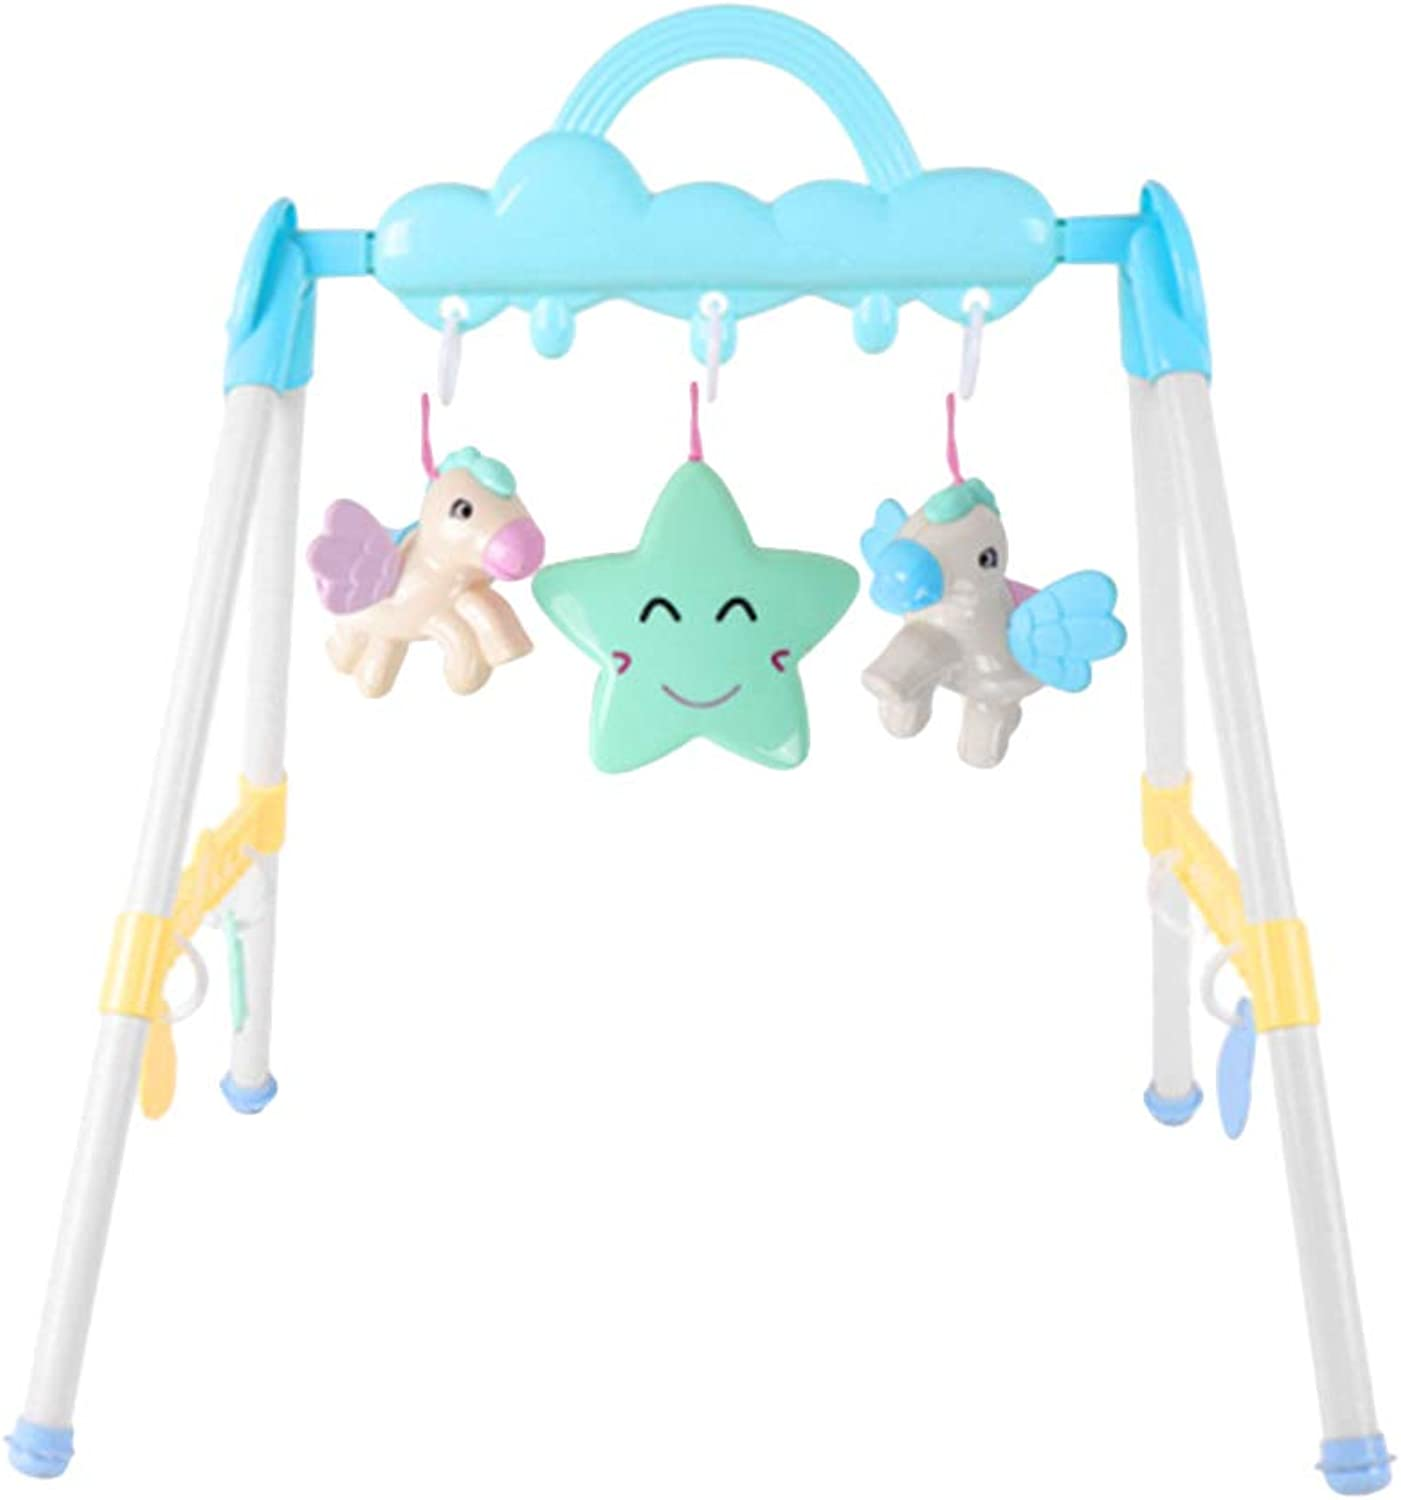 Toyvian Baby Fitness Frame Activity Play Gym Hanging Bell Early Educational Game Toy for Toddlers